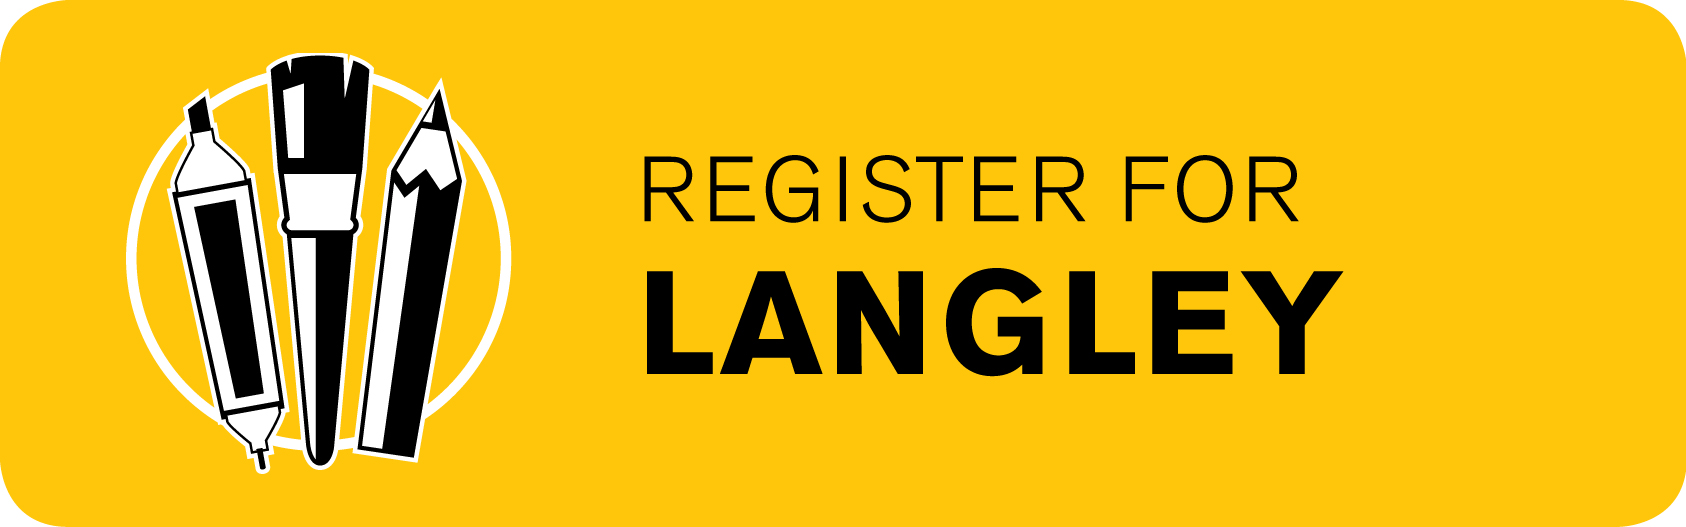 Register for Langley